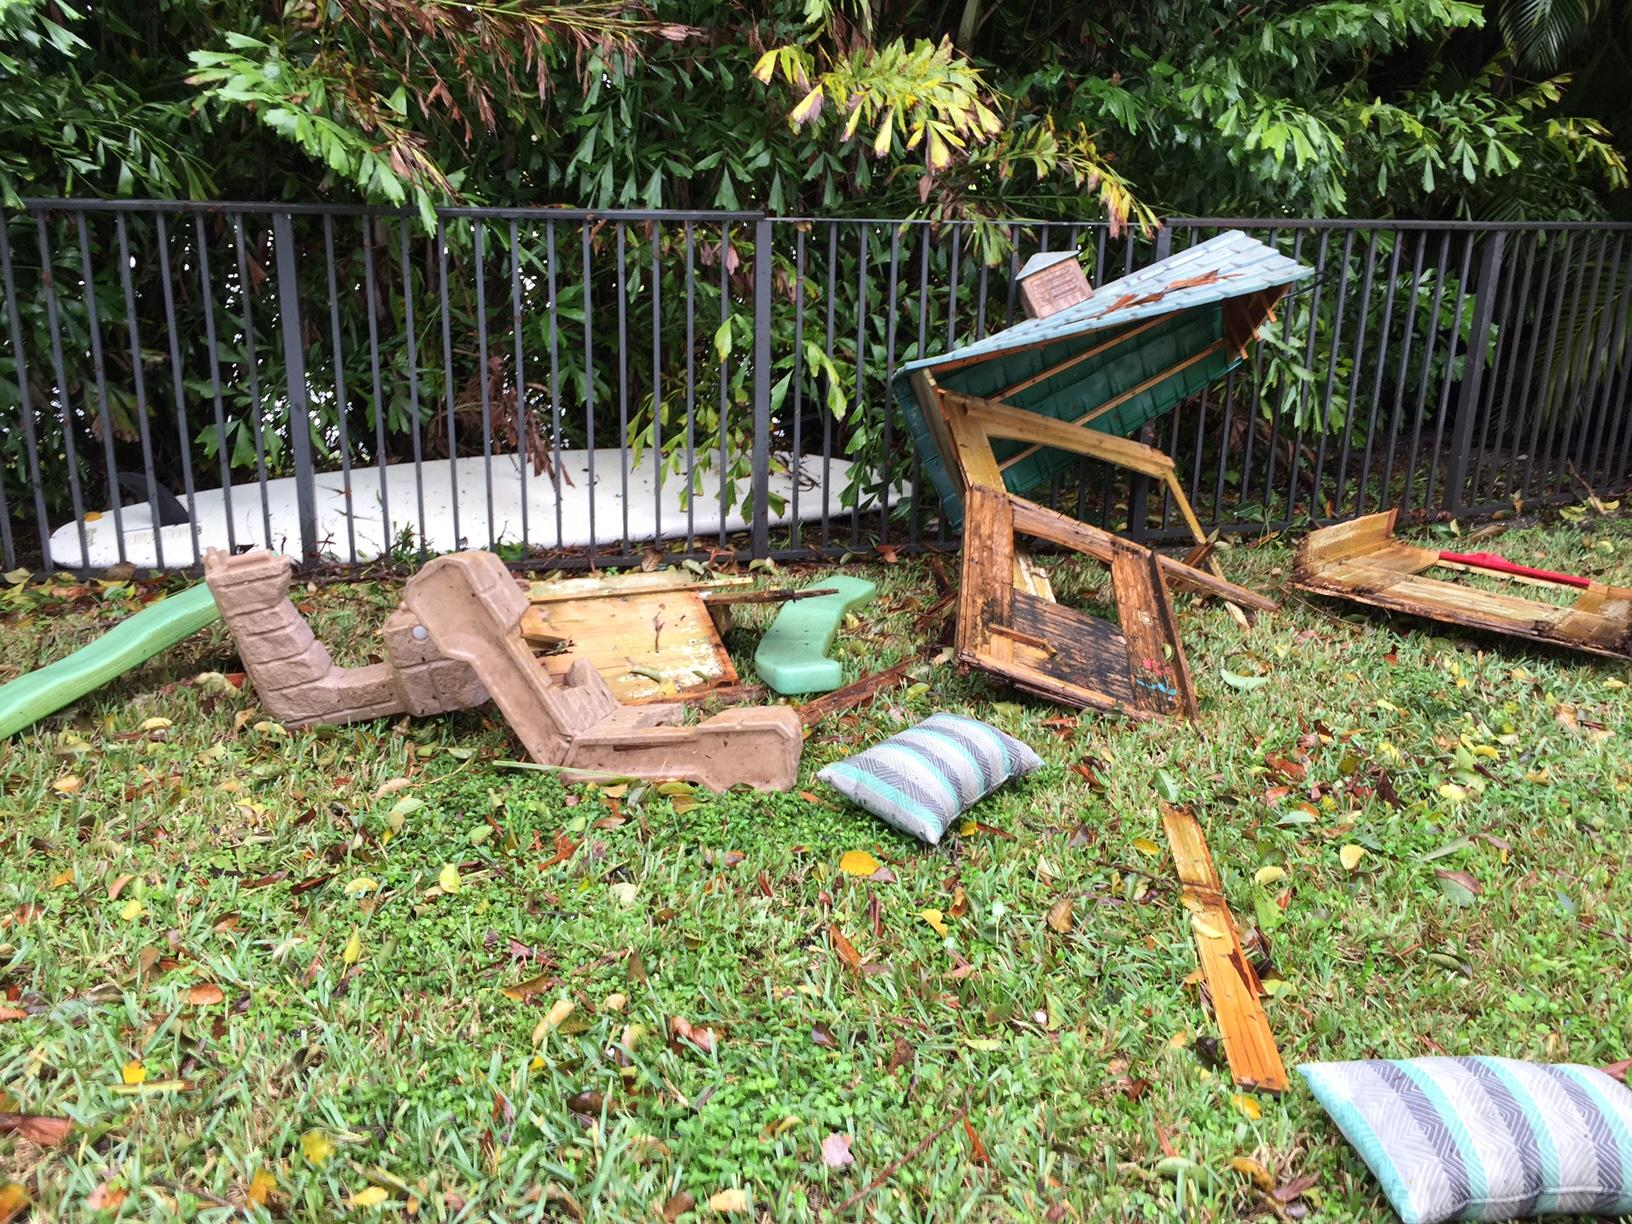 ef 0 tornado likely hit boynton and delray damage scattered wpec